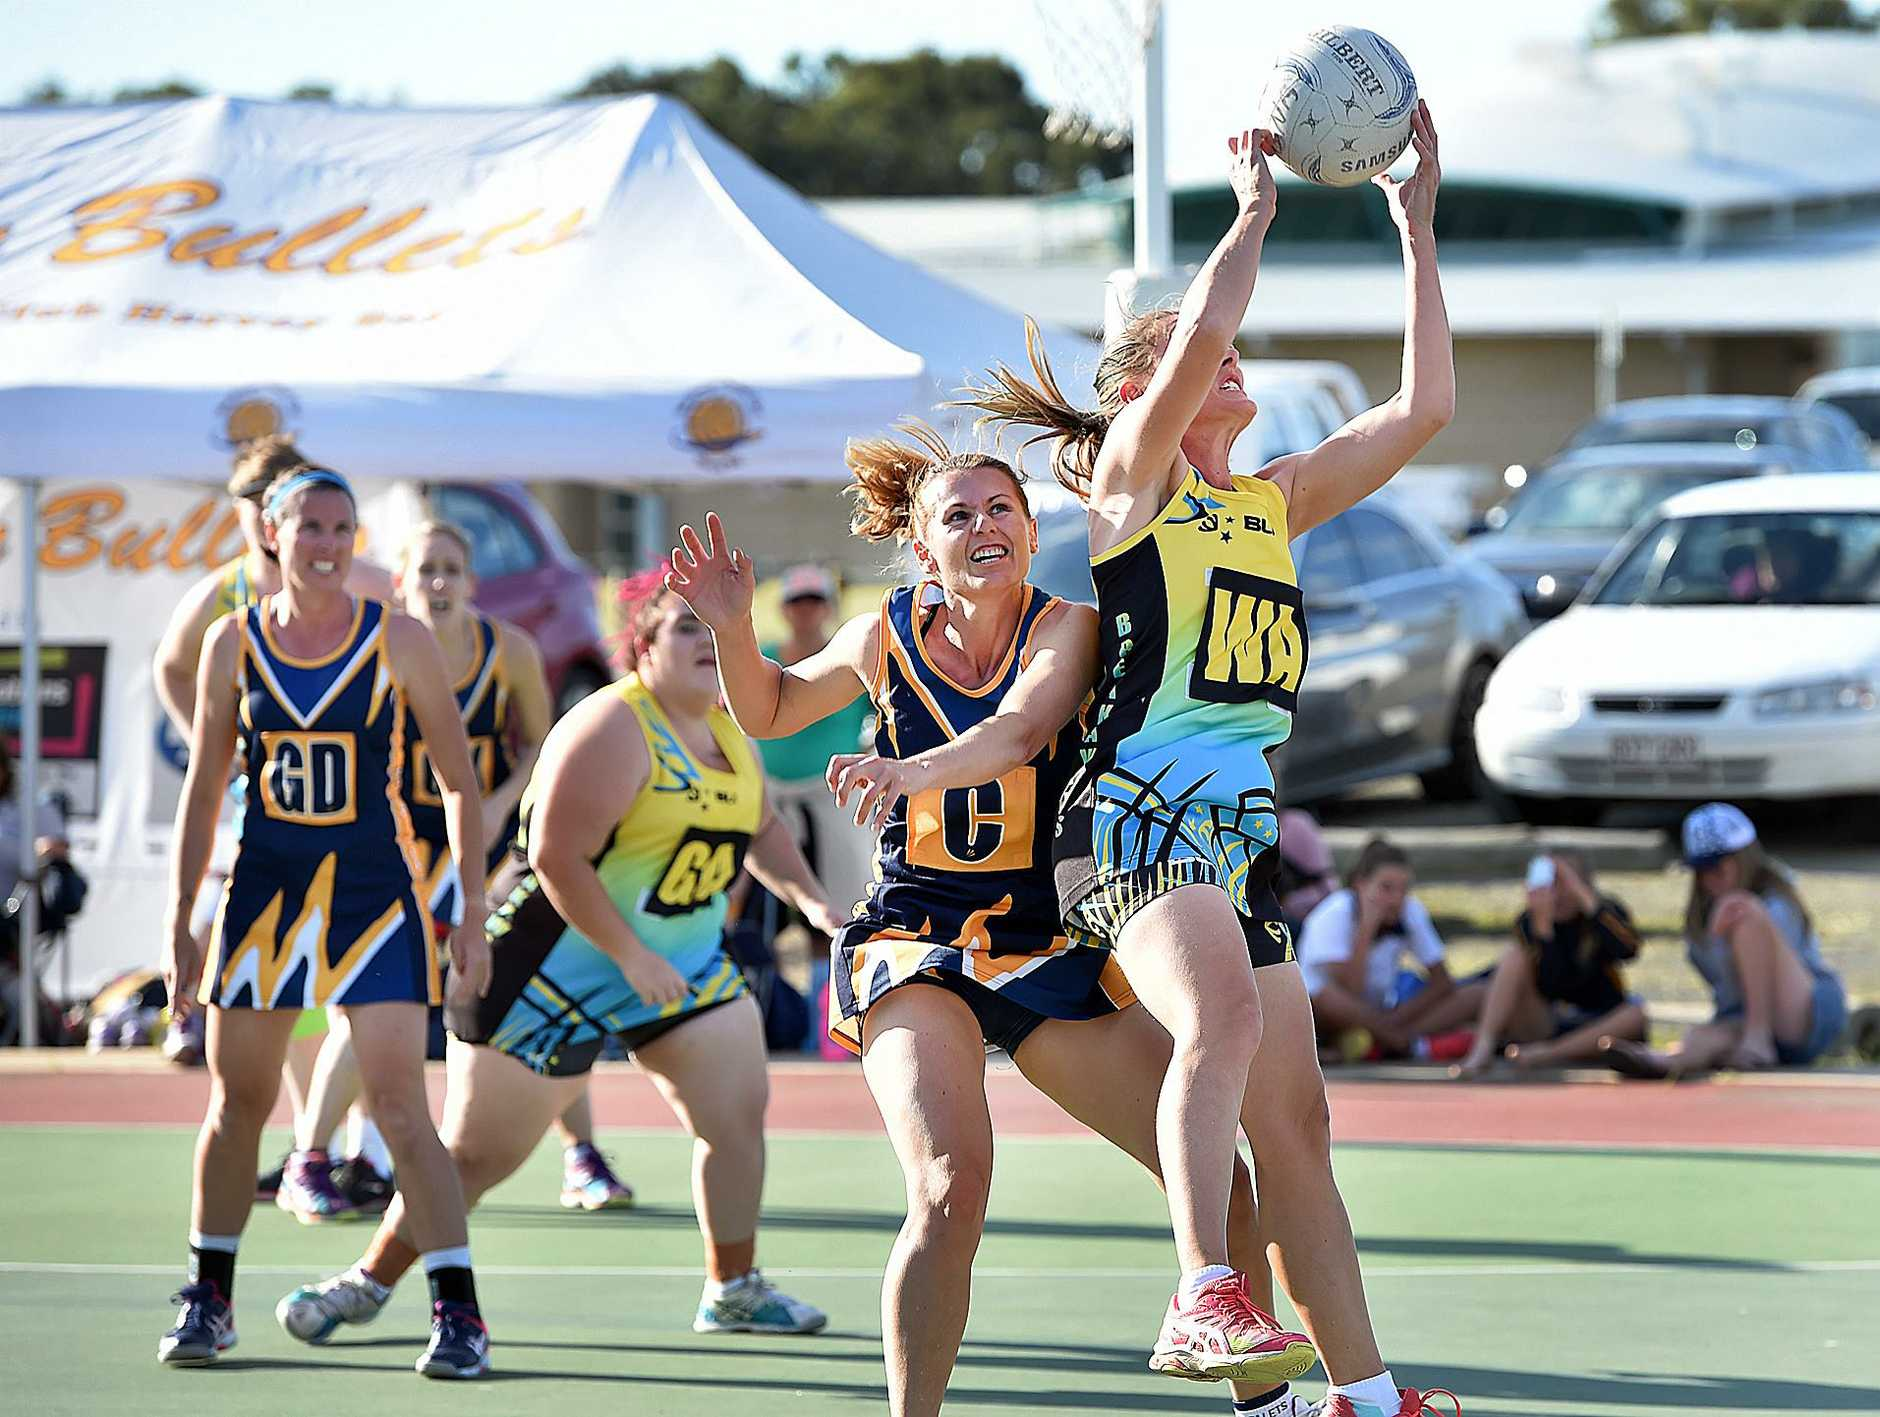 Hervey Bay netball semi-final - Bullets Boscia V. Breakaways Bayside. Breakaways wing attack Renee Searle.